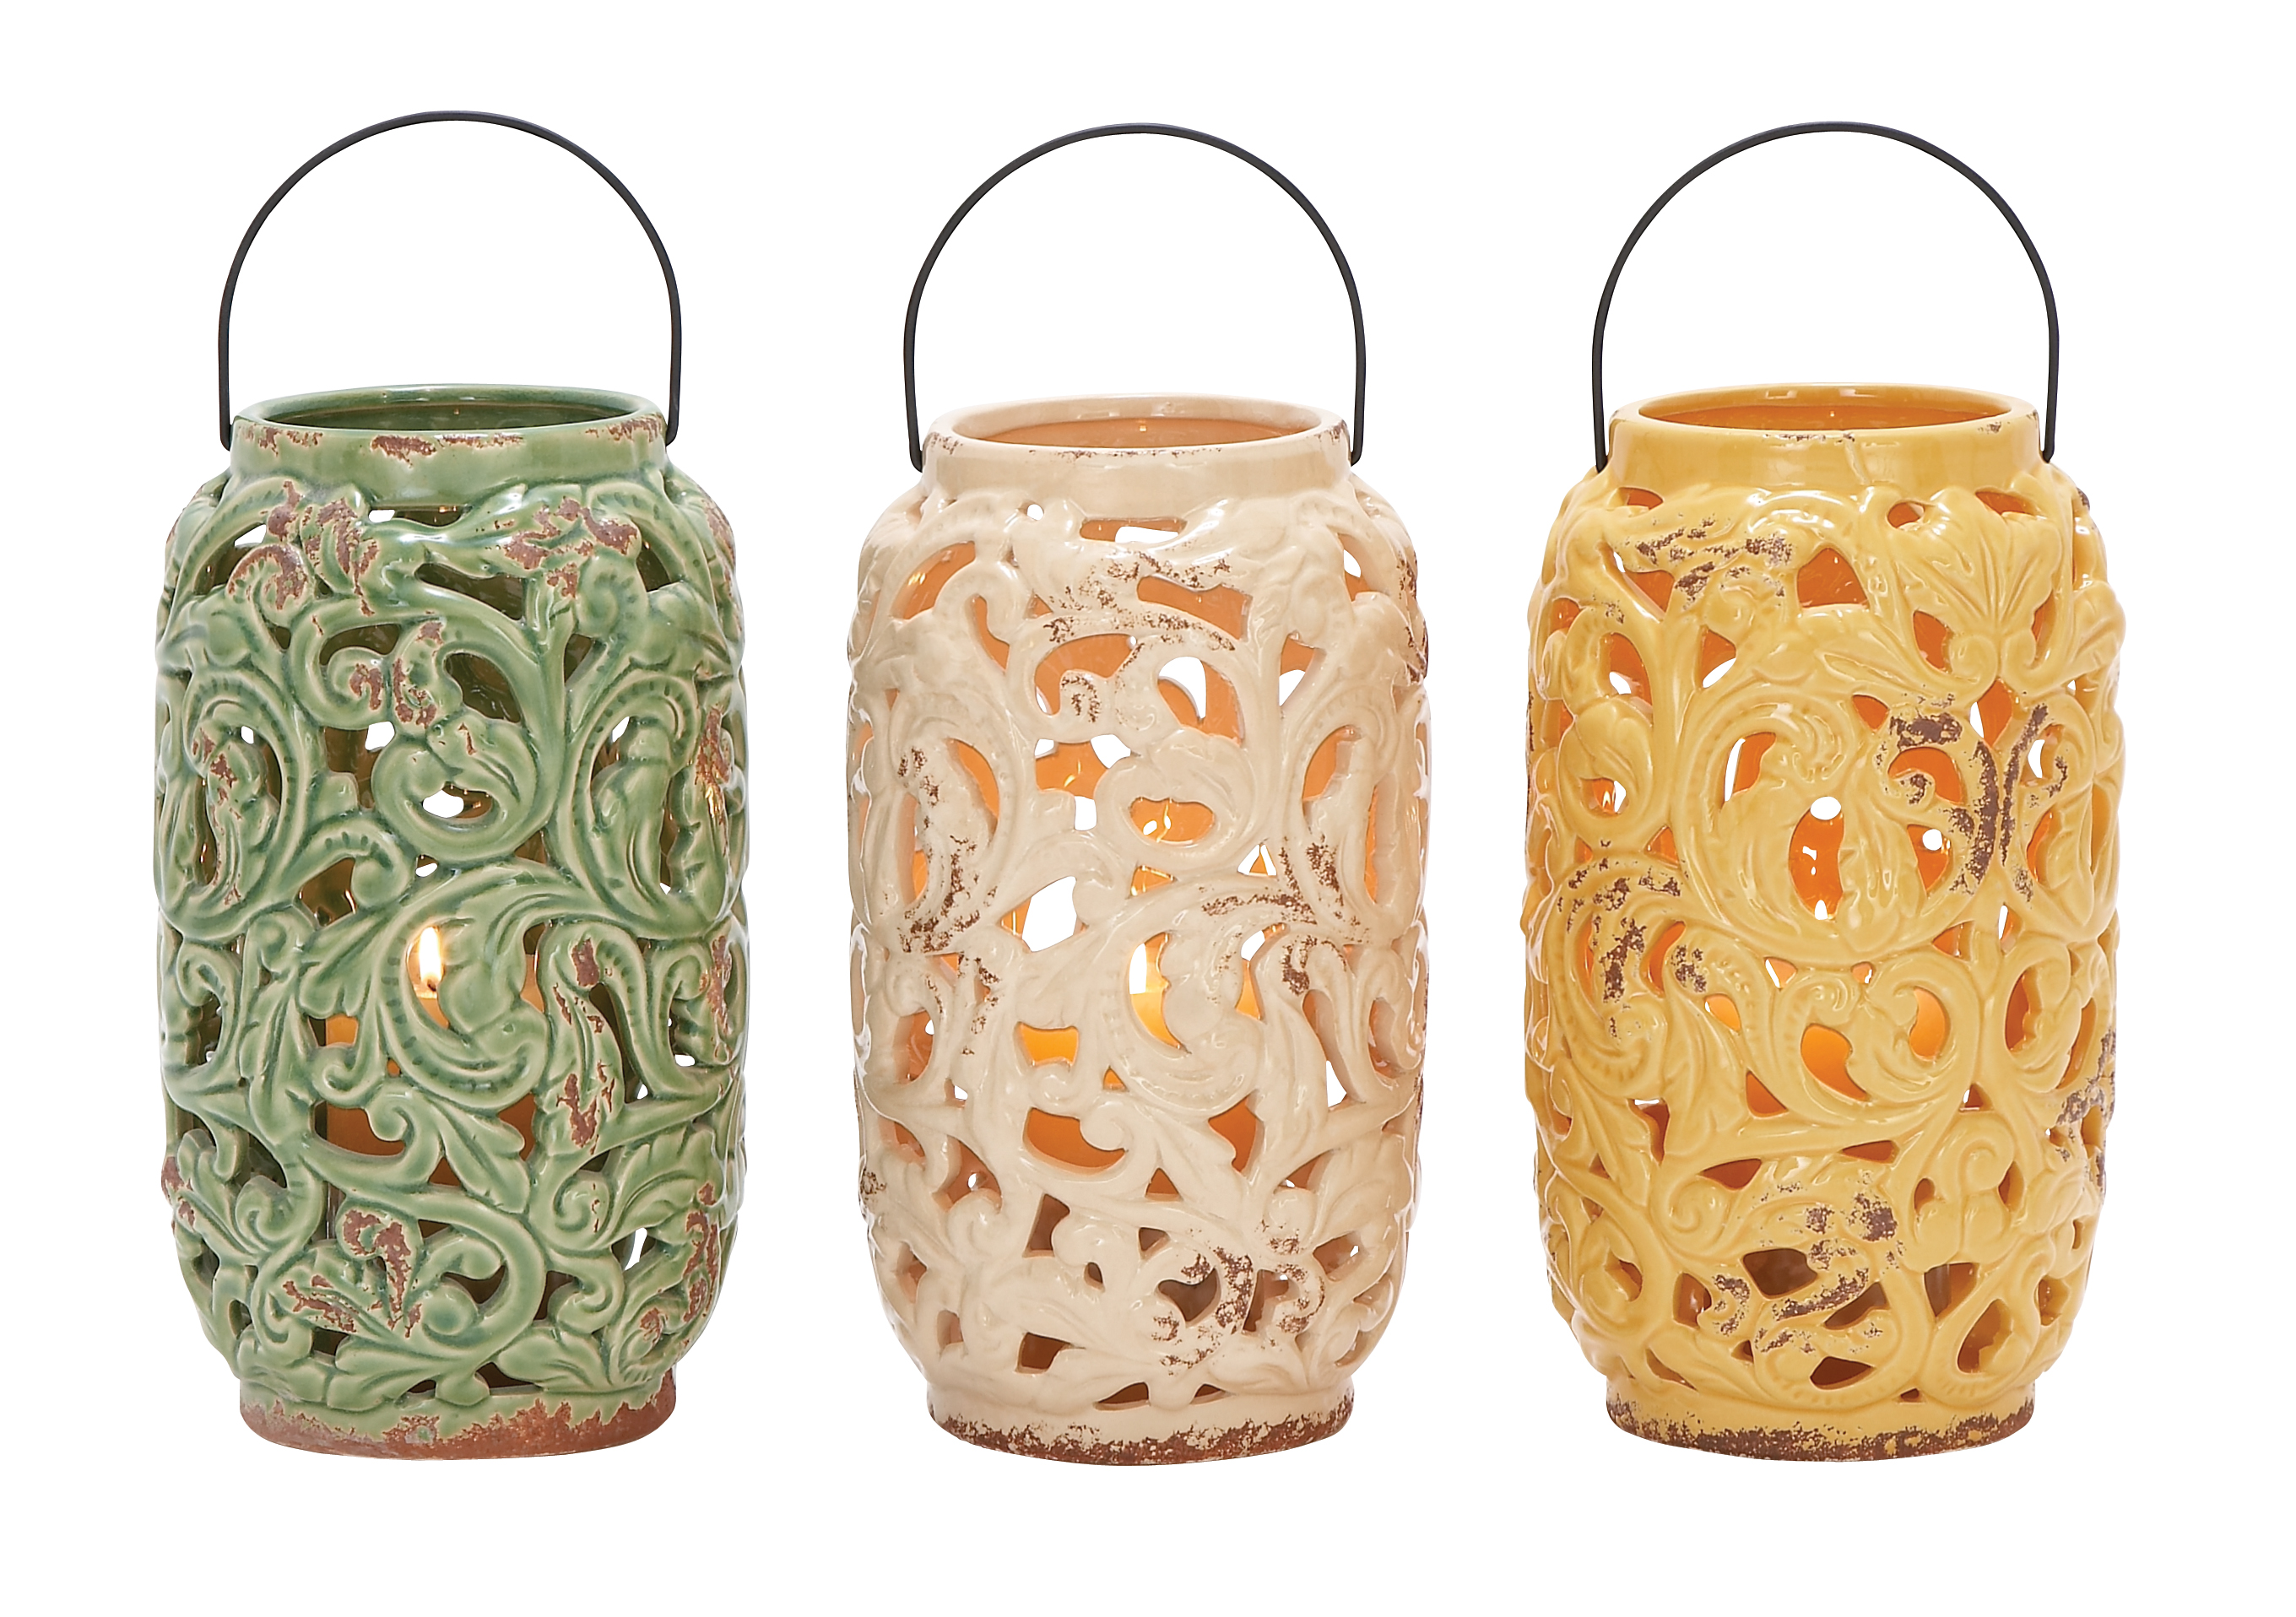 Decmode Stoneware Lantern Candle Holder Set Of 3 Walmart Com Walmart Com